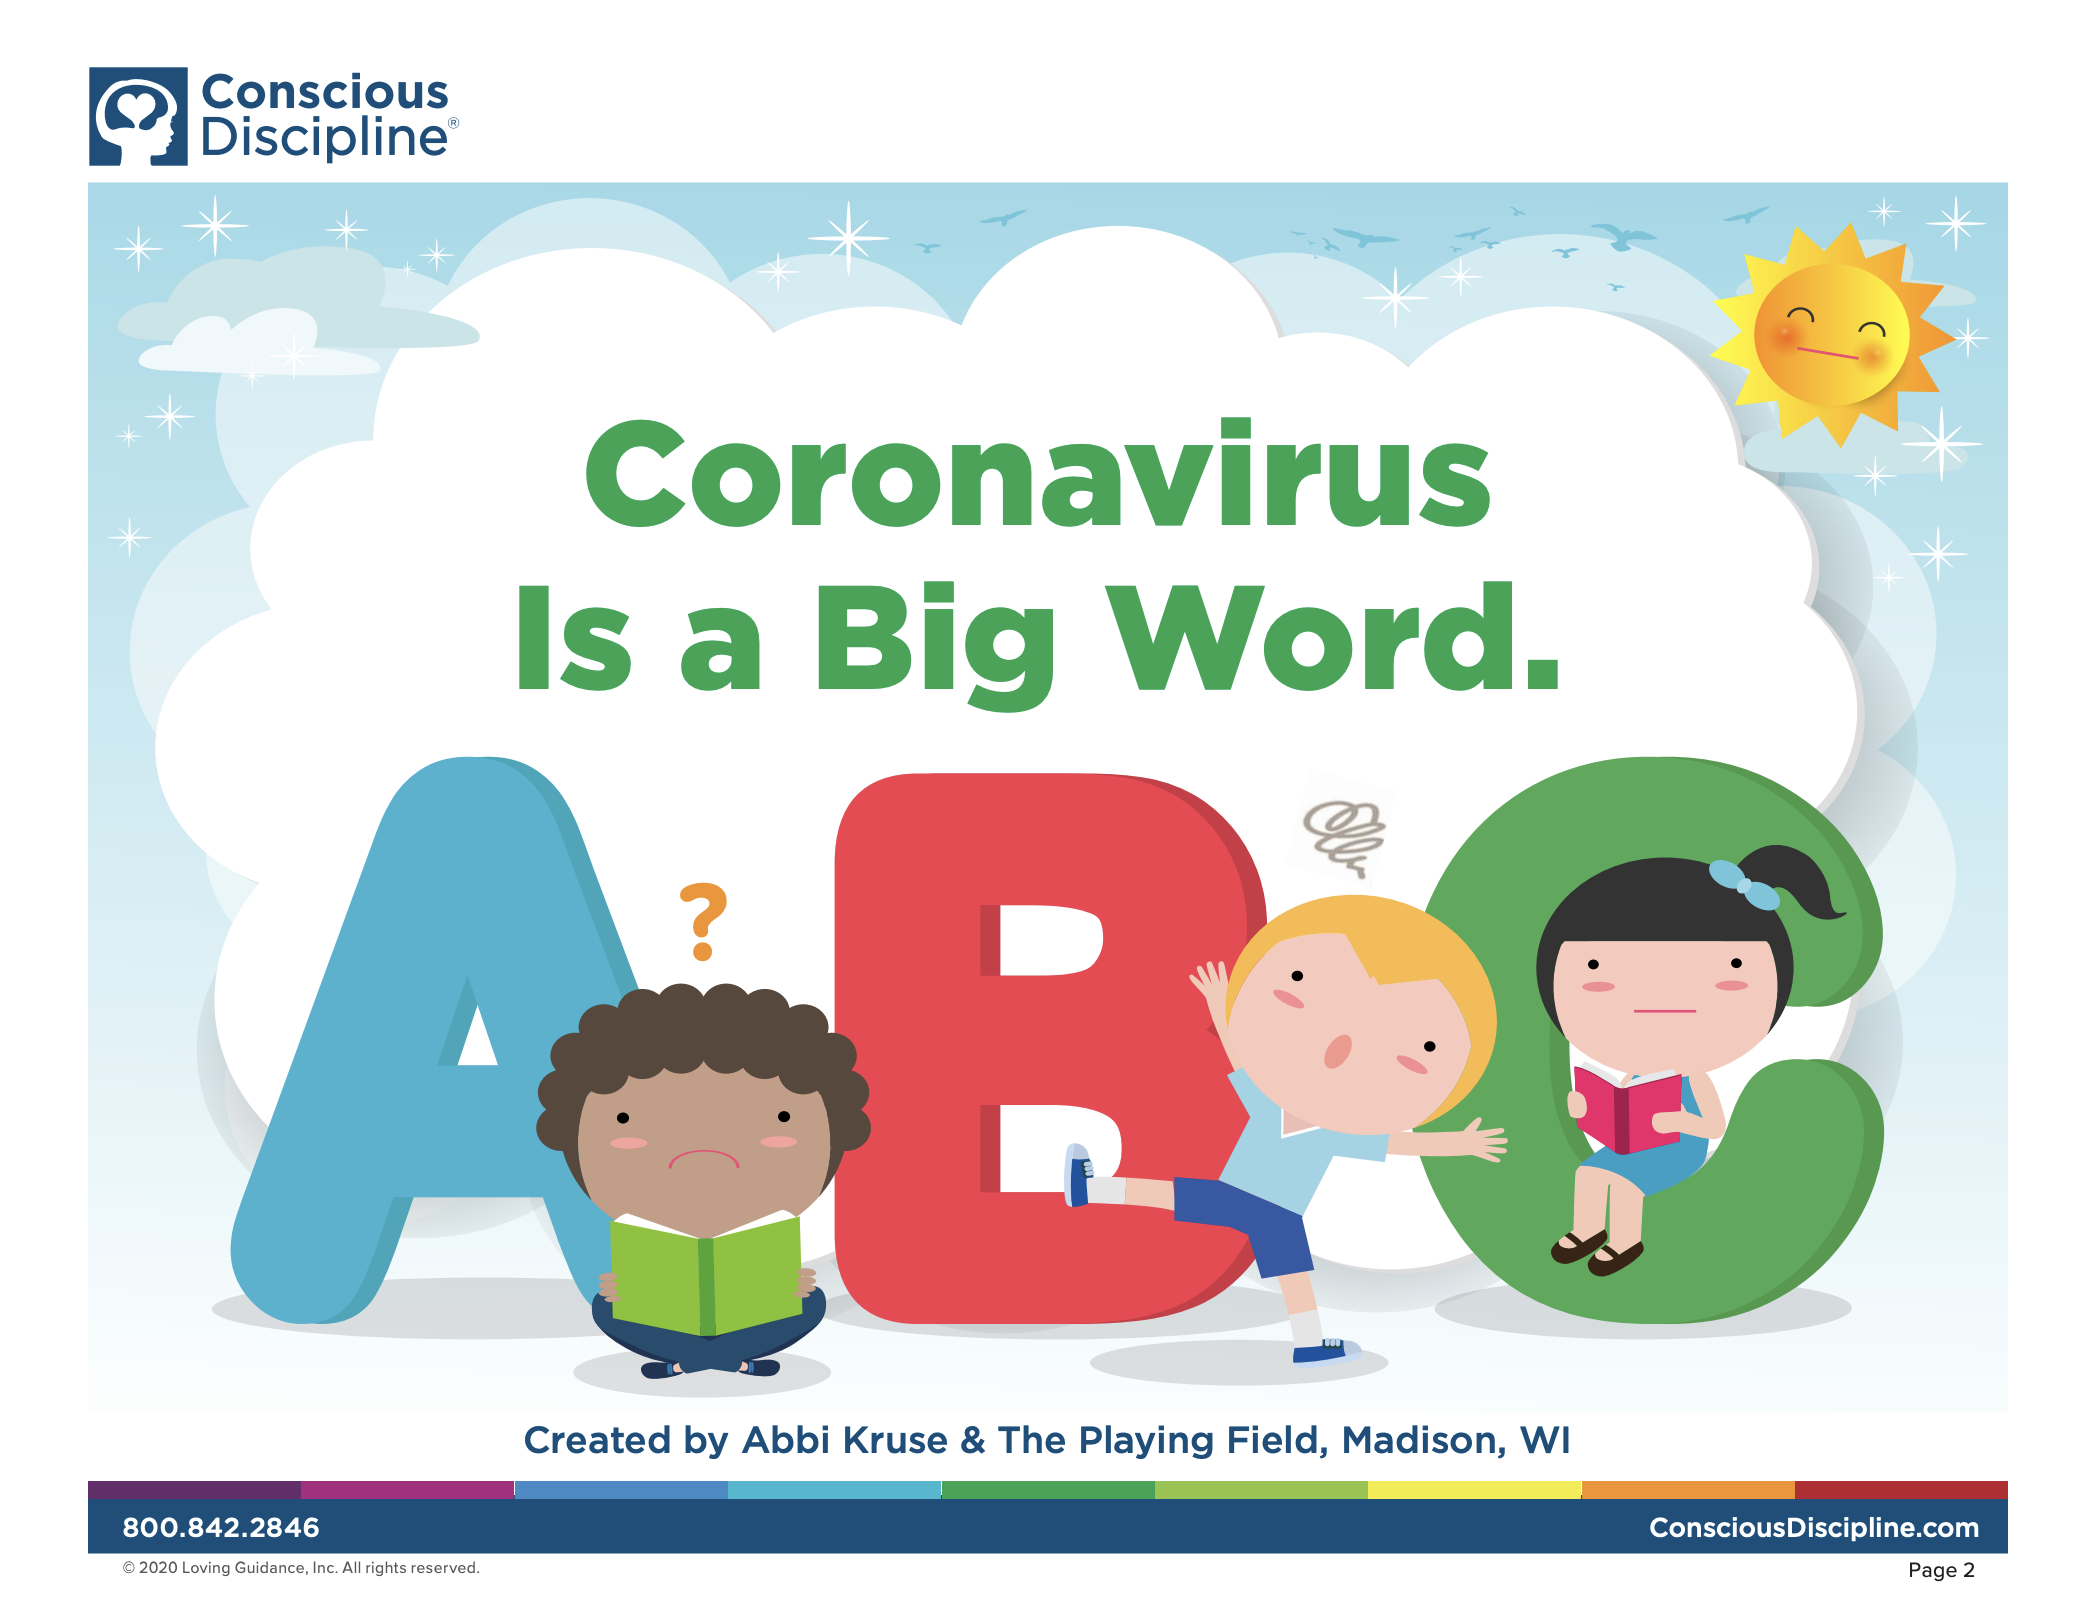 Coronavirus is a Big Word